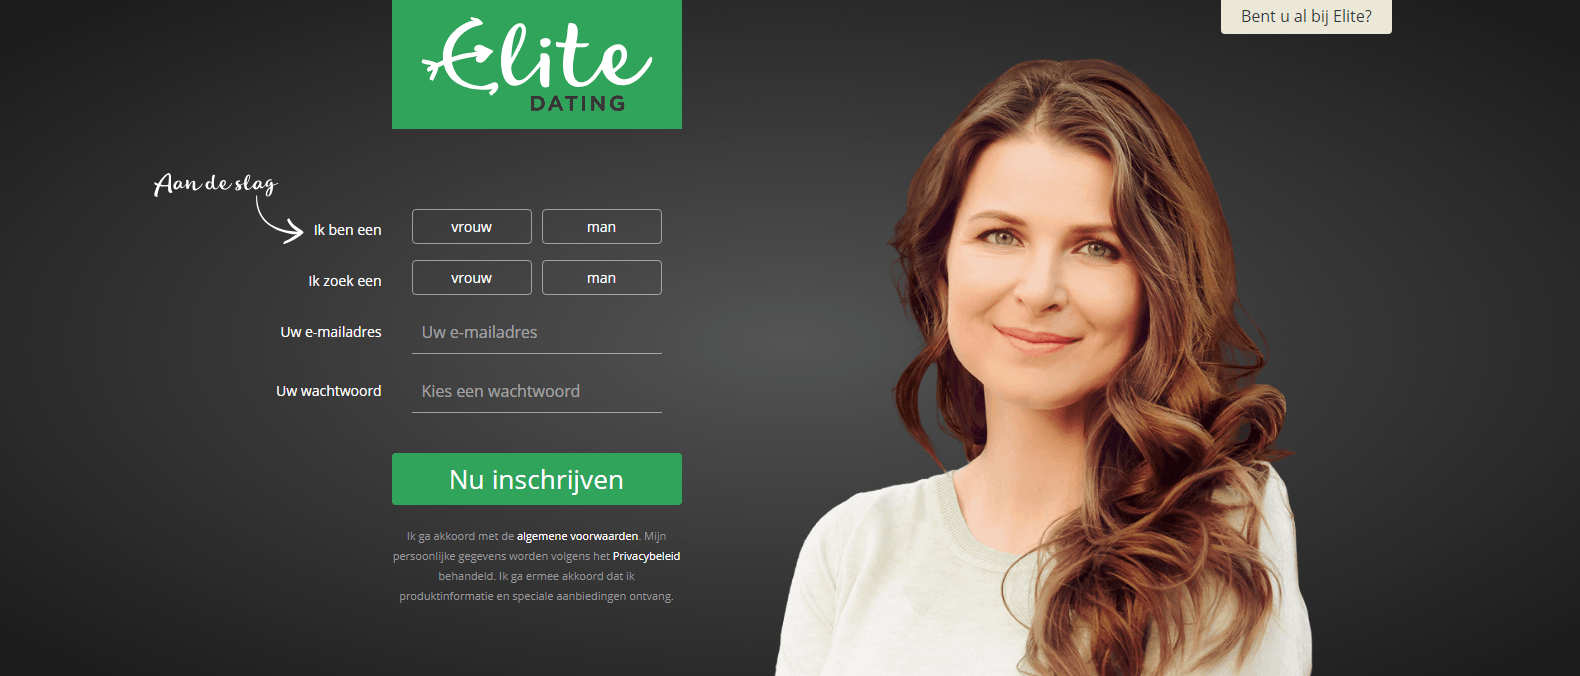 Volledig gratis dating site in Denemarken